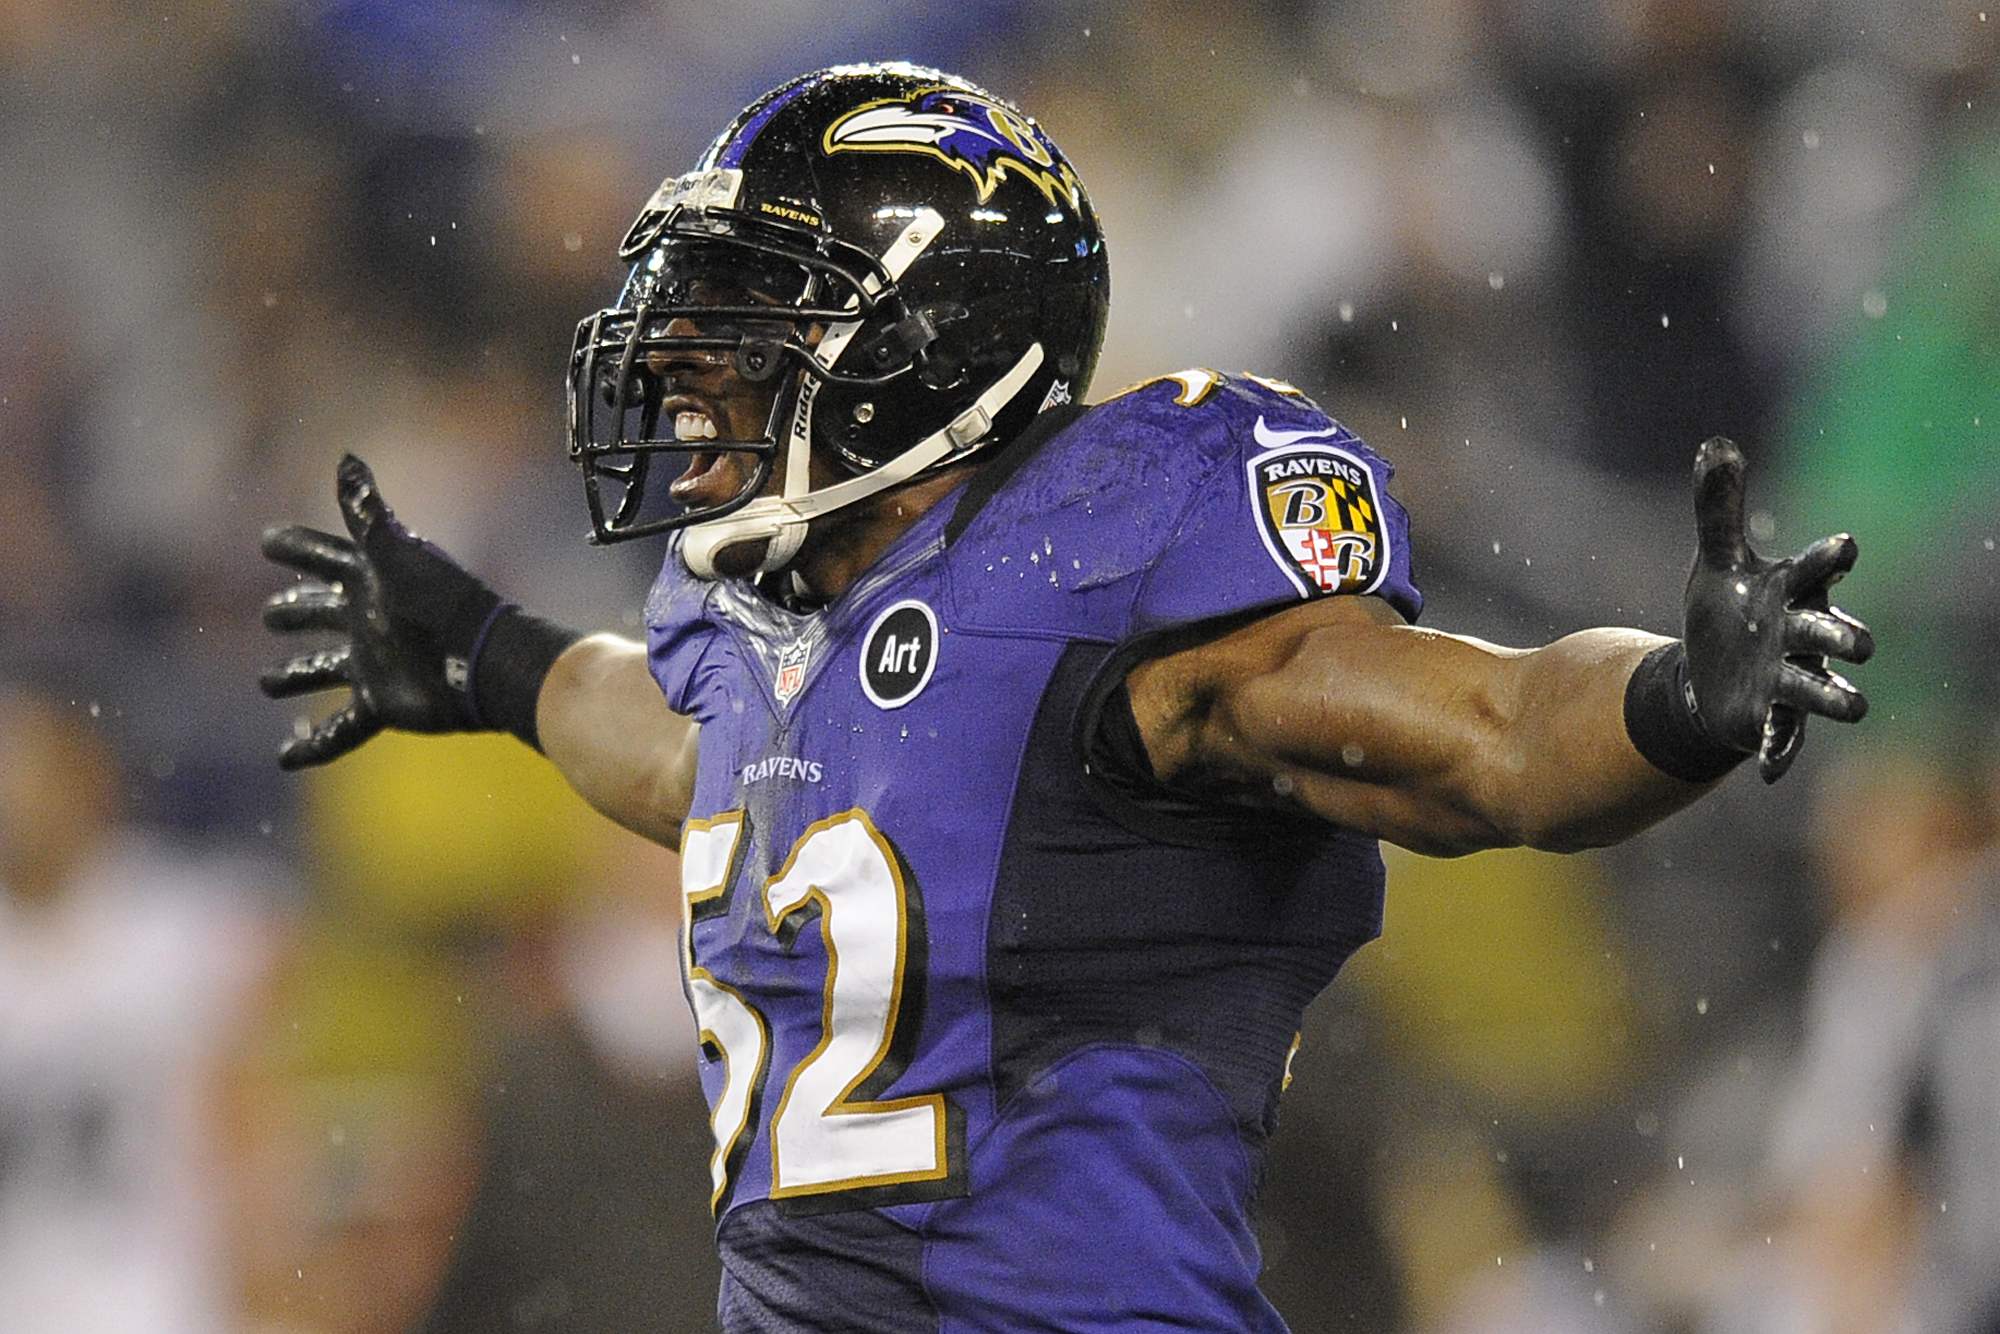 Ray Lewis Quotes About Football Quotesgram: Ravens Football Suggs Quotes. QuotesGram